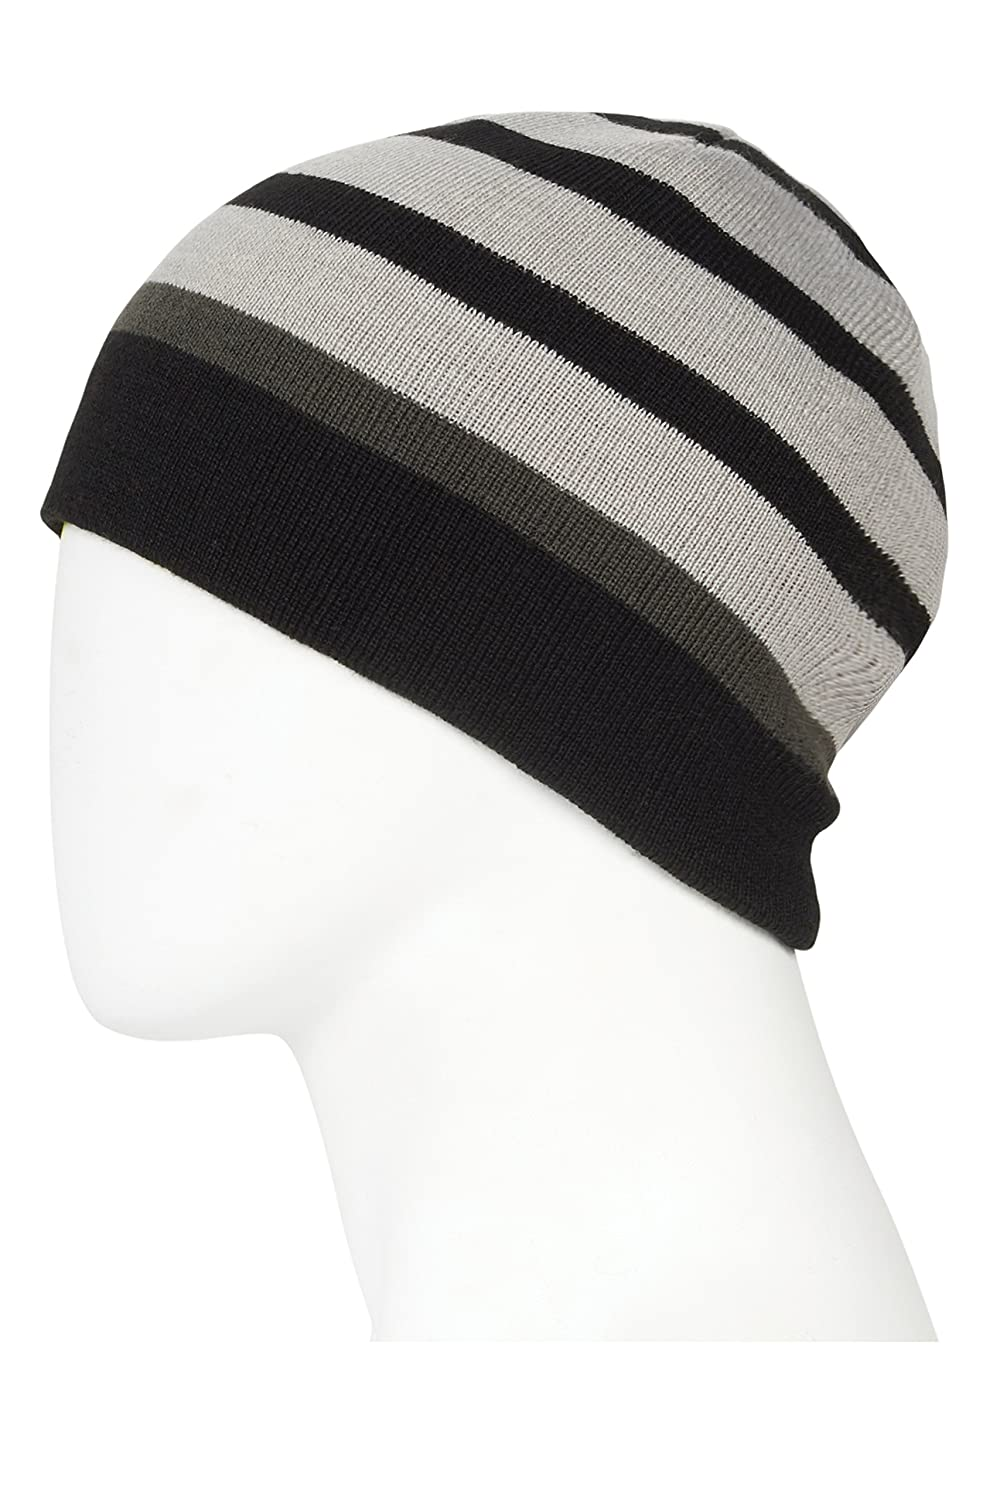 686 Mens Switch Reversible Beanie One-Size